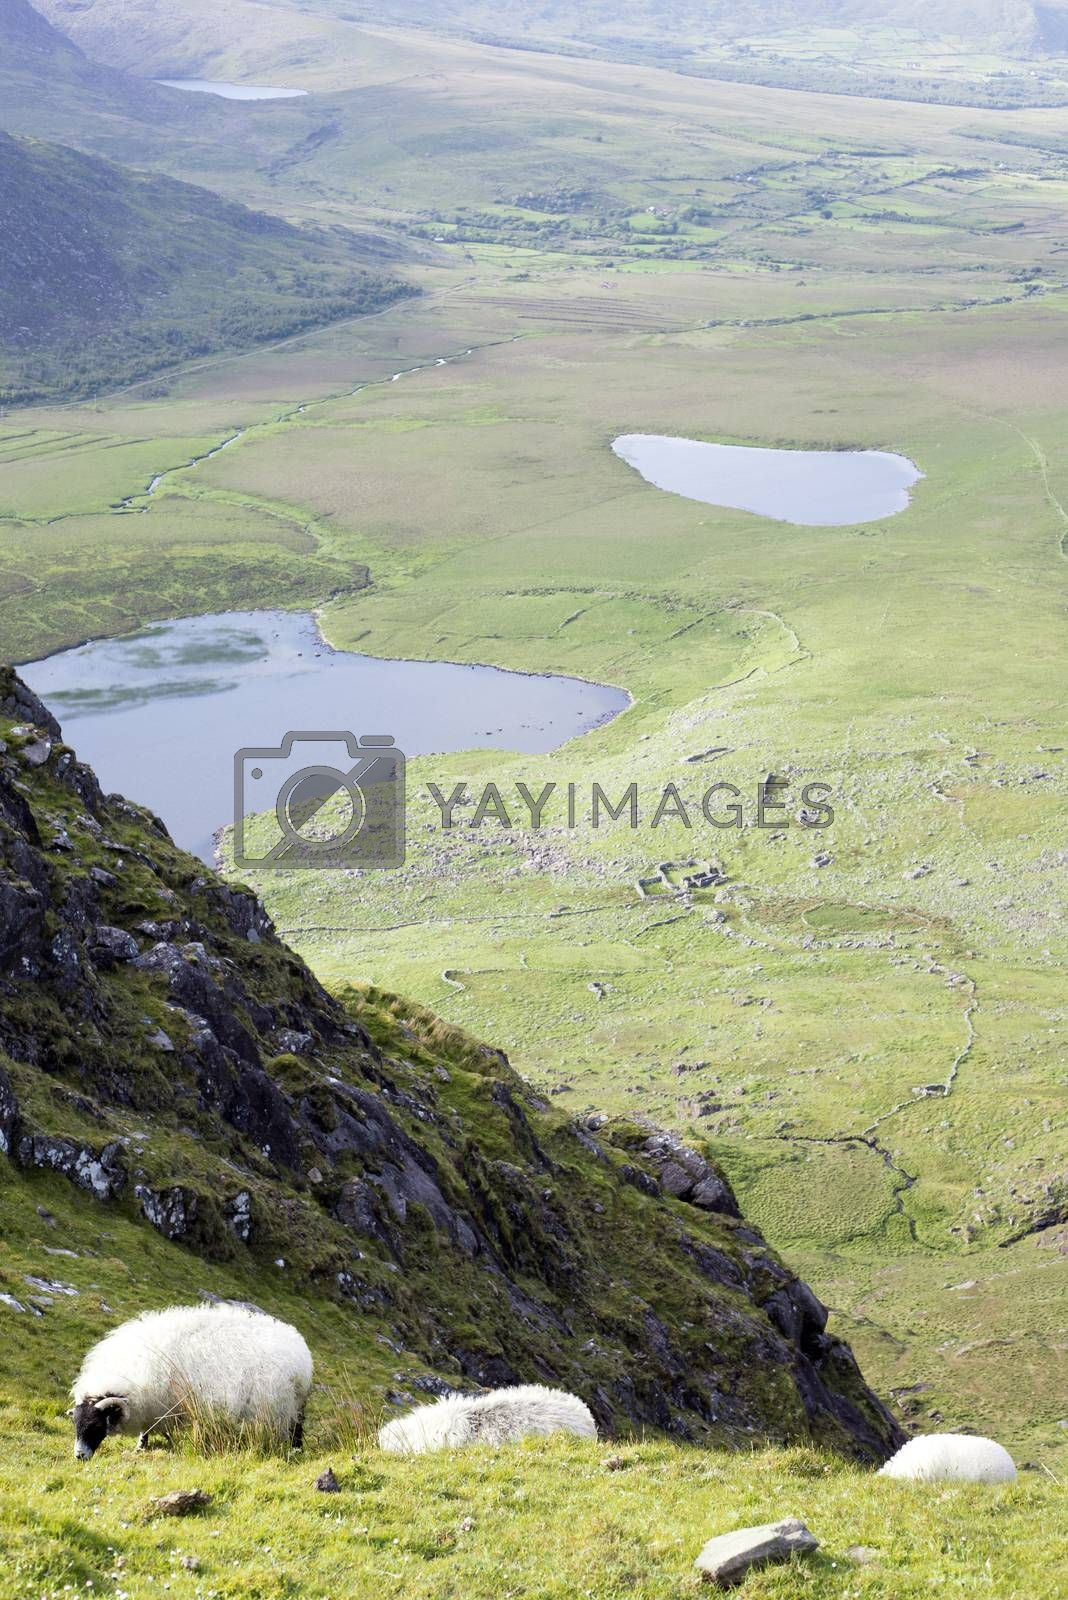 sheep at a scenic view of the mountains on the kerry way in county kerry ireland